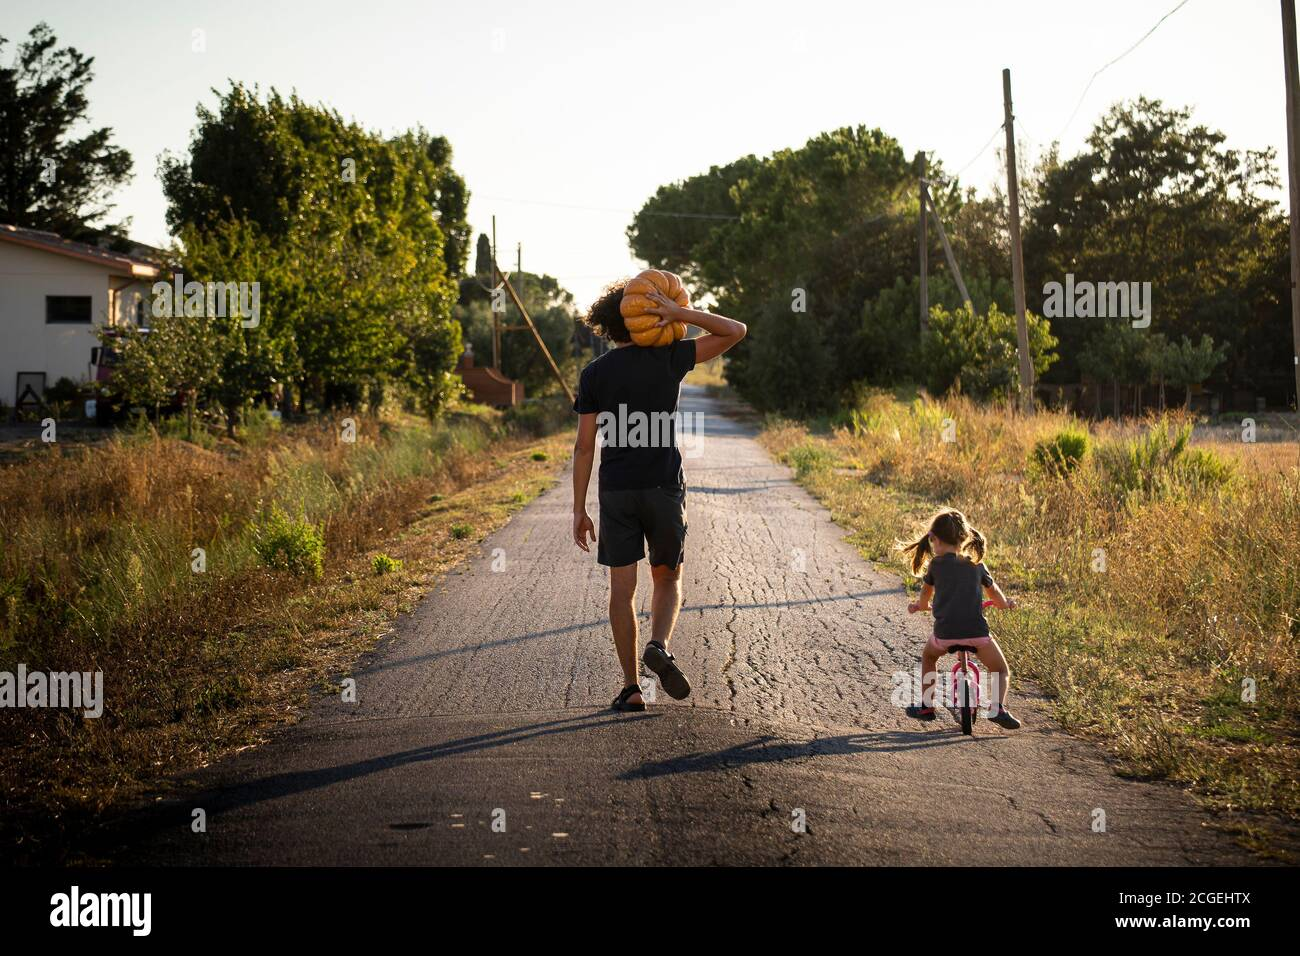 Little child girl, riding a bike, with her young father carrying a big halloween pumpkin on a country road at sunset. Back view. Stock Photo